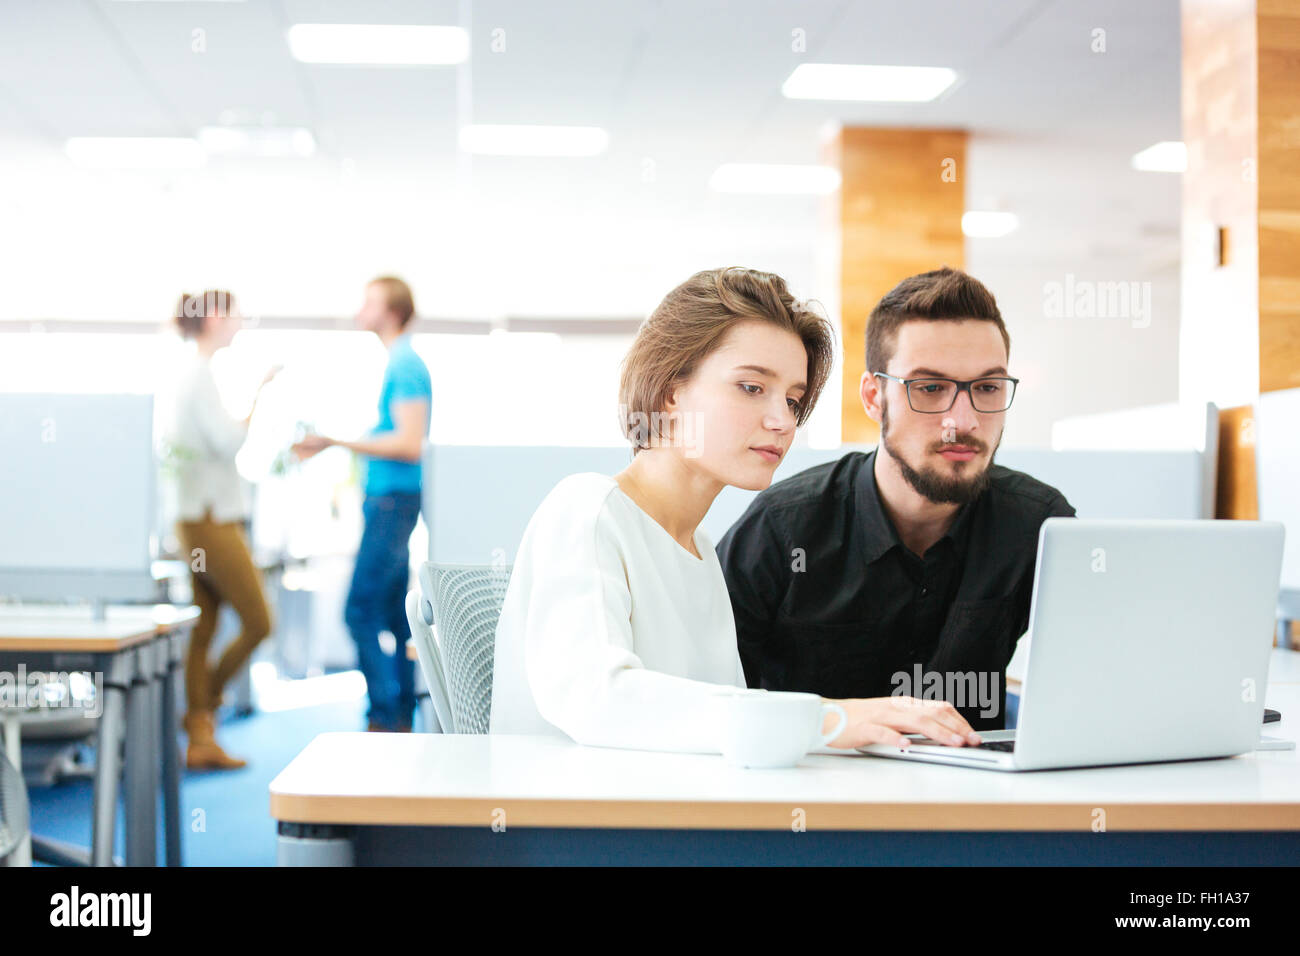 Serious focused young man and woman sitting and working with laptop together in office - Stock Image